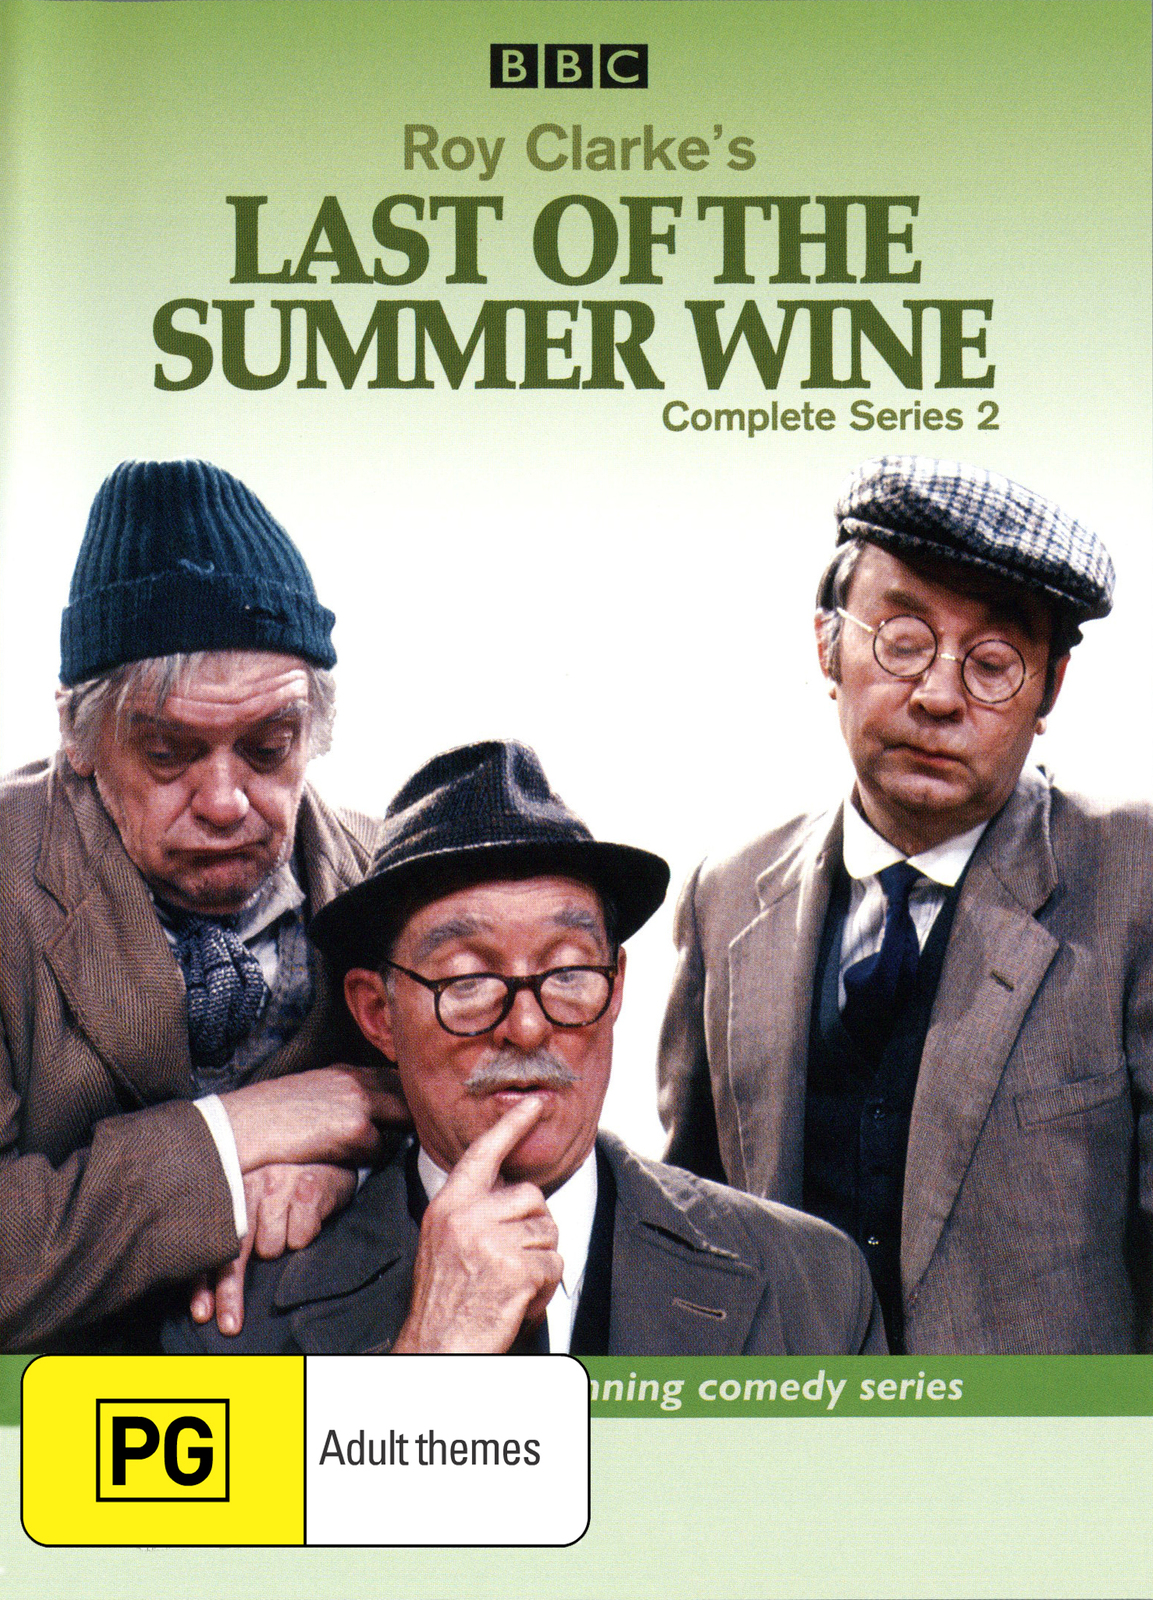 Last Of The Summer Wine (Roy Clarke's) - Complete Series 2 (2 Disc Set) on DVD image